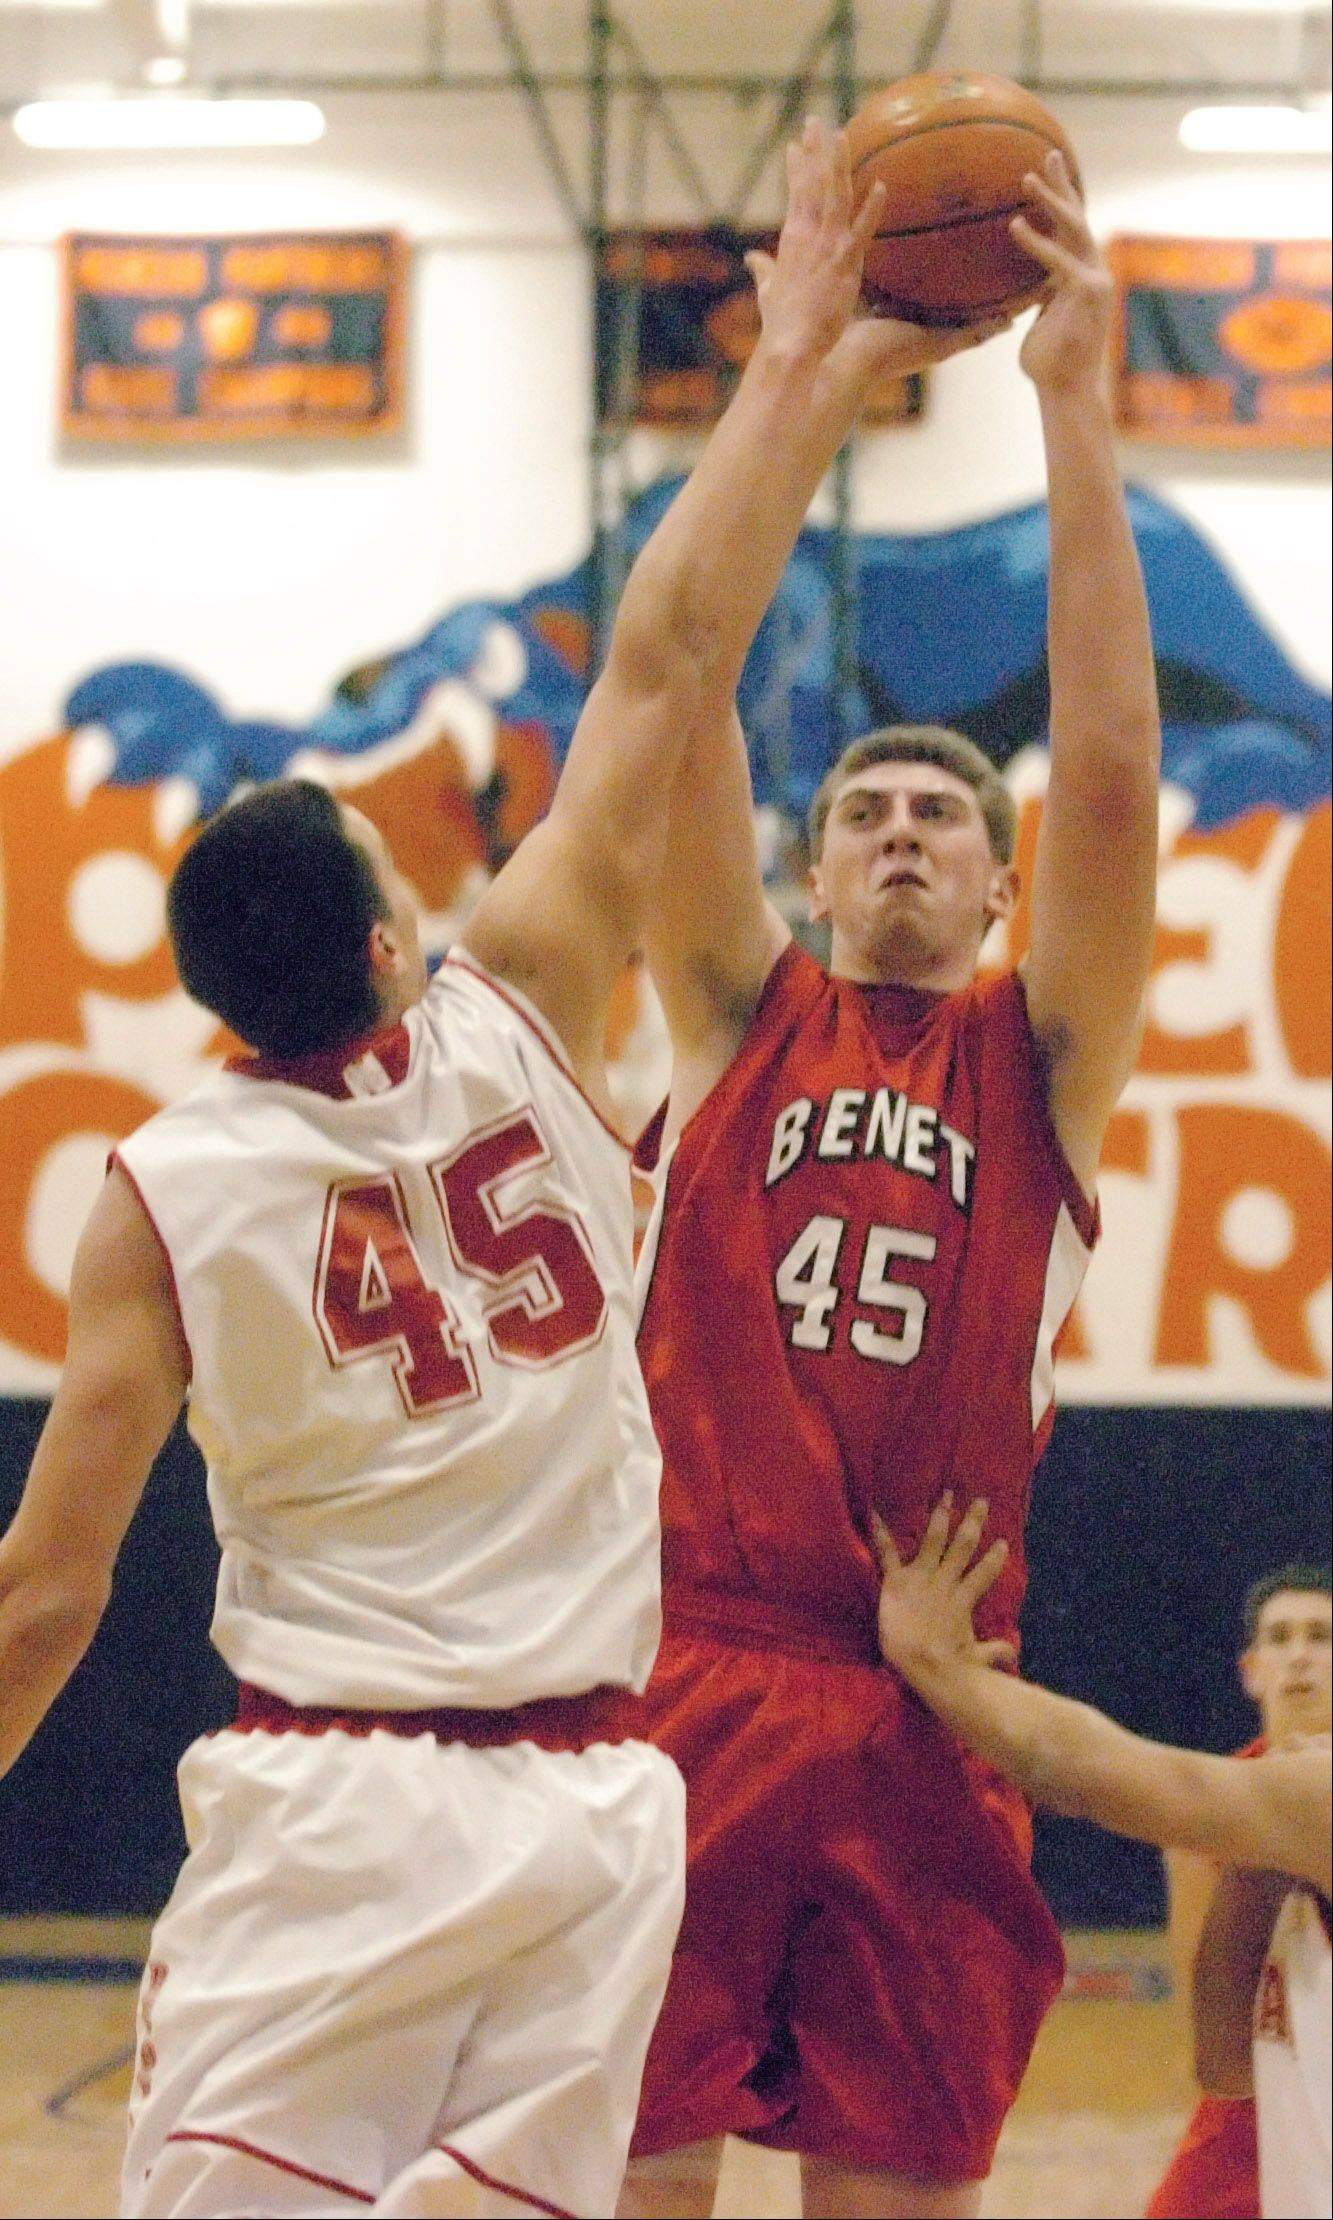 Nick Czarnowski of Naperville,left, and Sean O'Mara of Benet take part in the Benet vs. Naperville Central Hoops for Healing tournament in Oswego Friday.